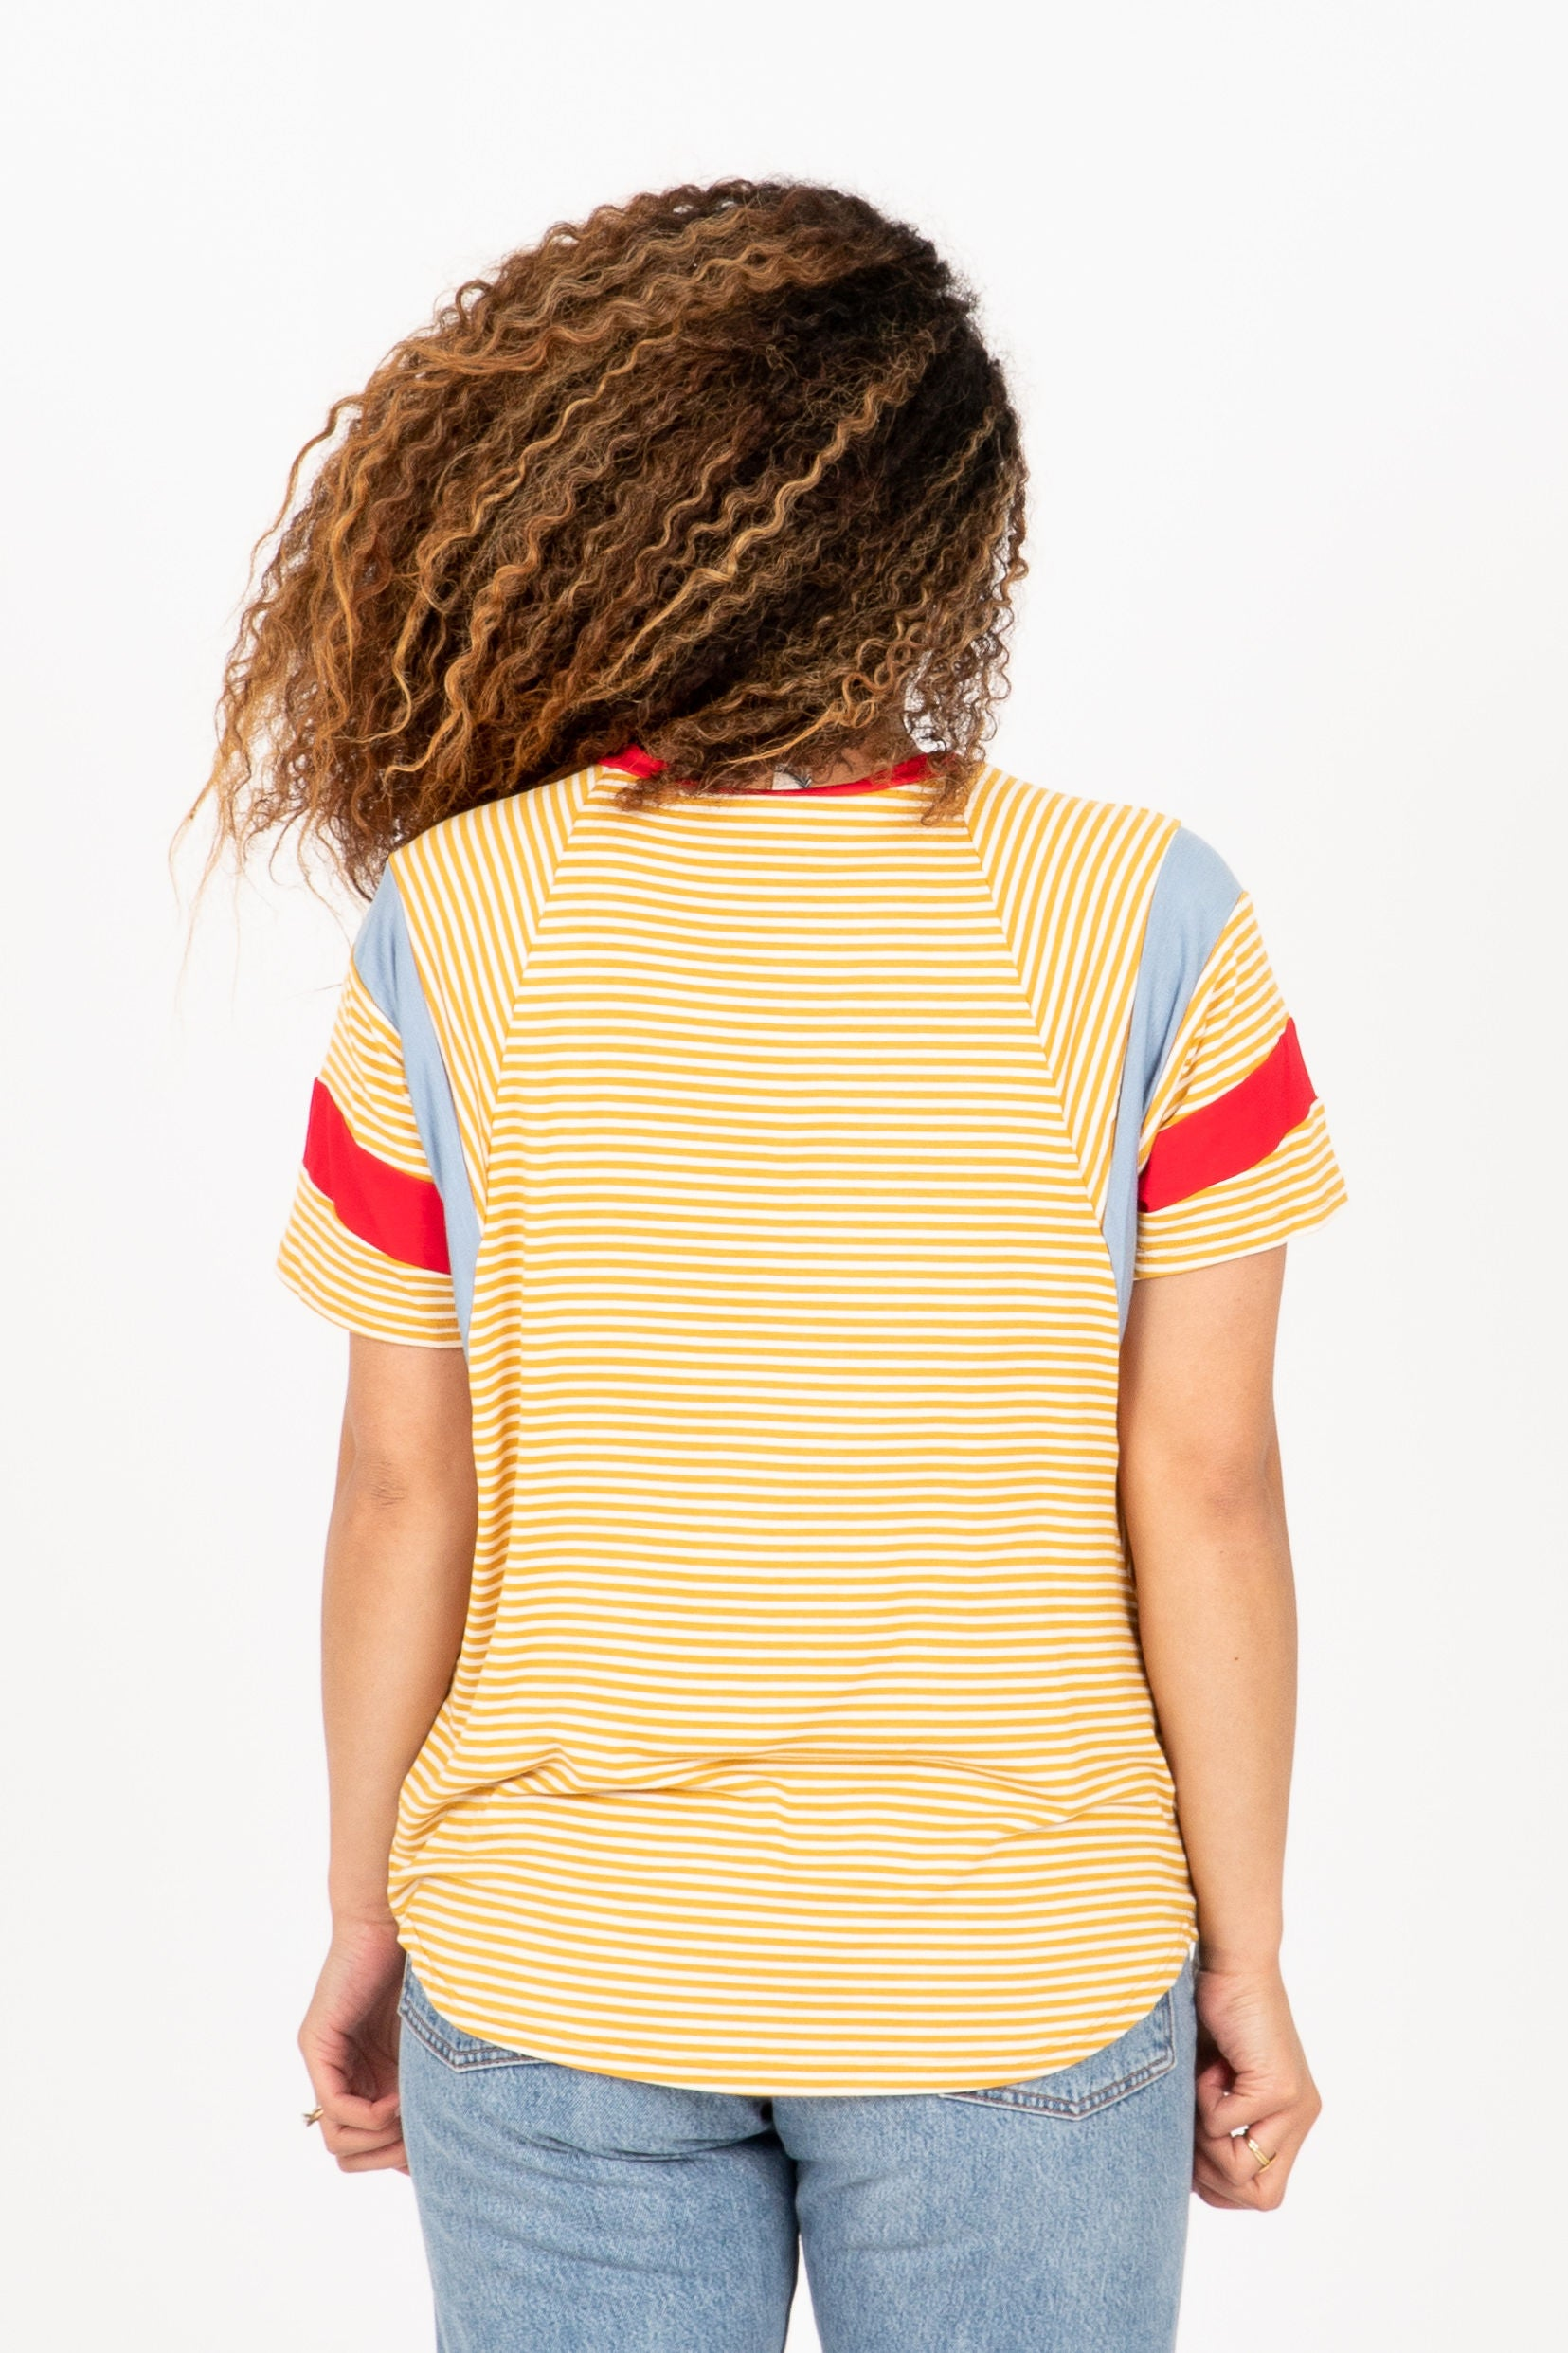 The Topanga Striped Block Blouse in Mustard